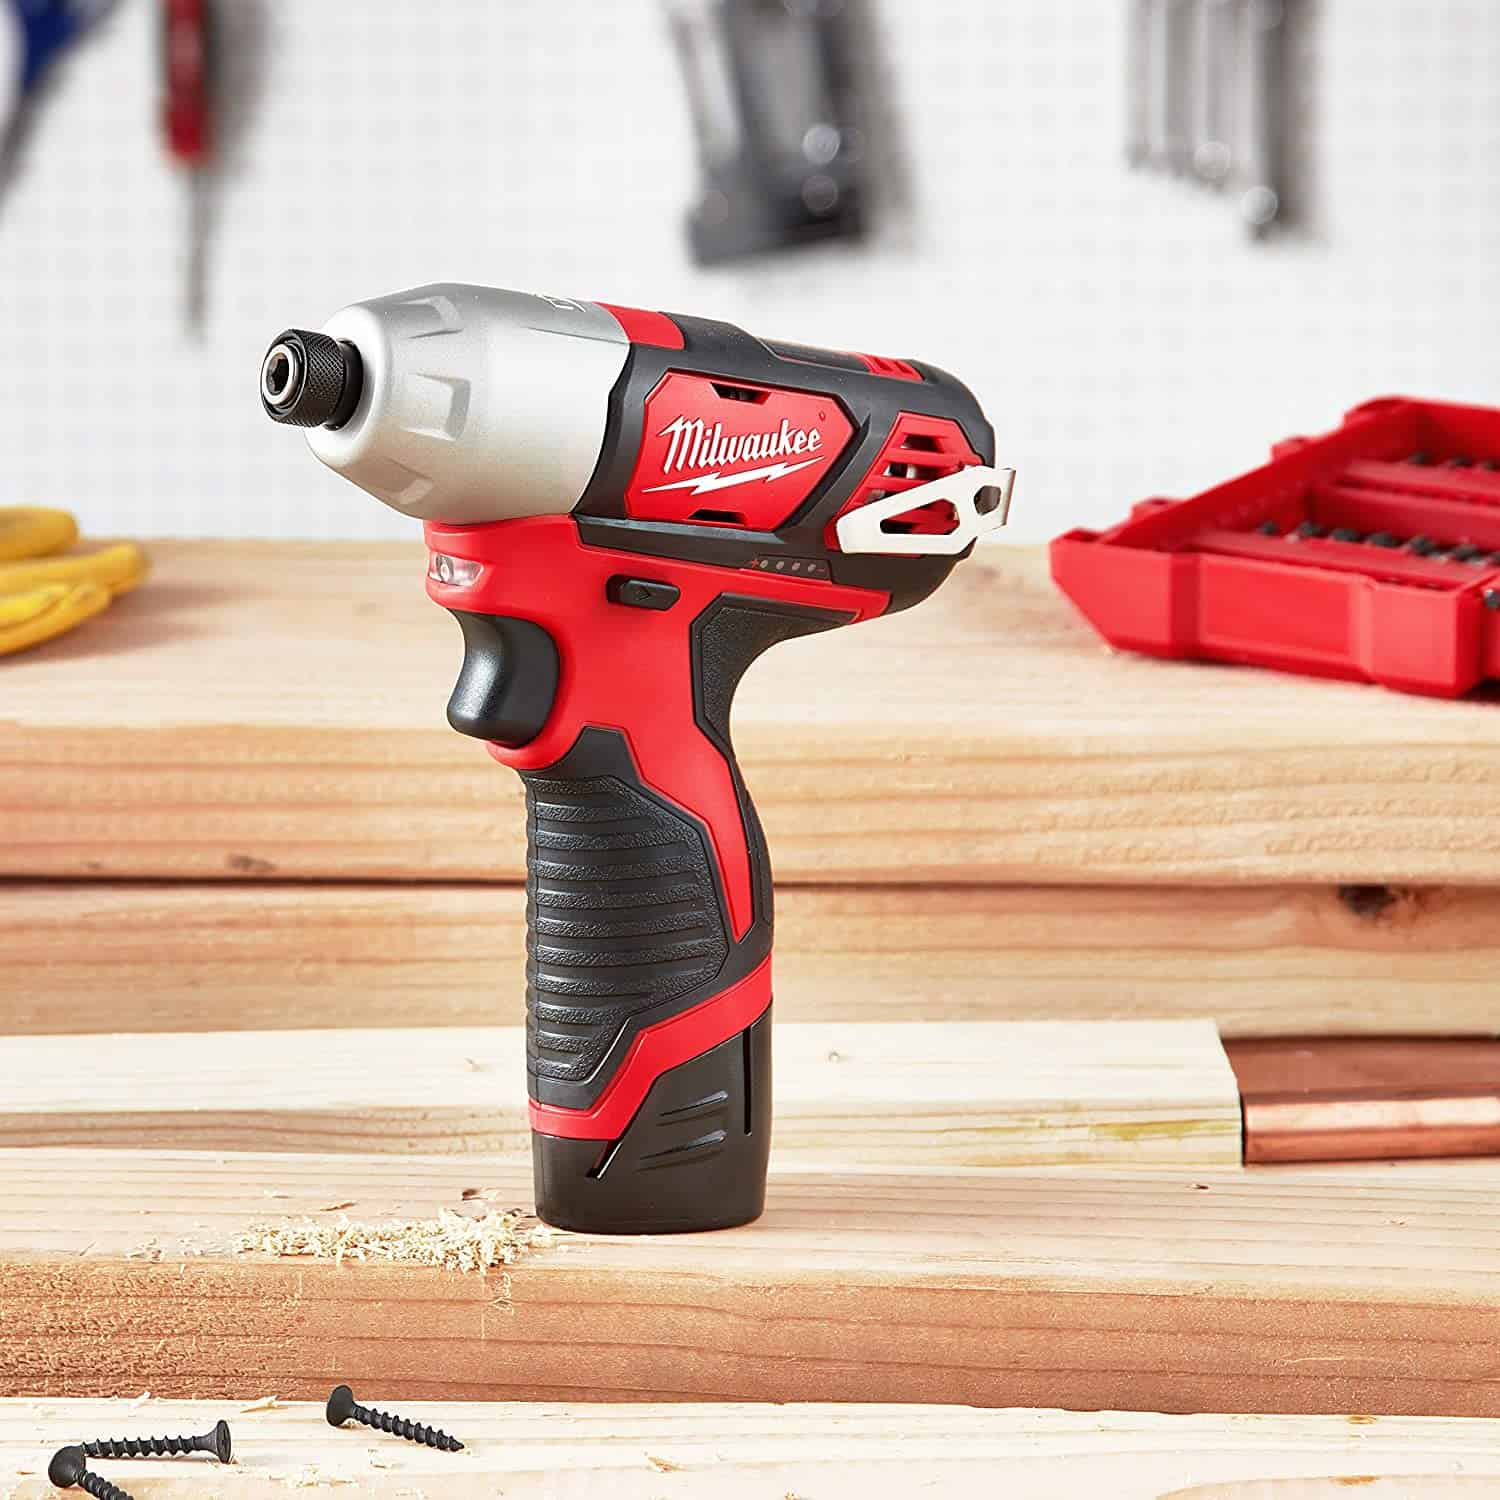 Best budget option 12v impact driver: MILWAUKEE'S 2462-20 M12 Lithium-Ion Cordless Impact Driver